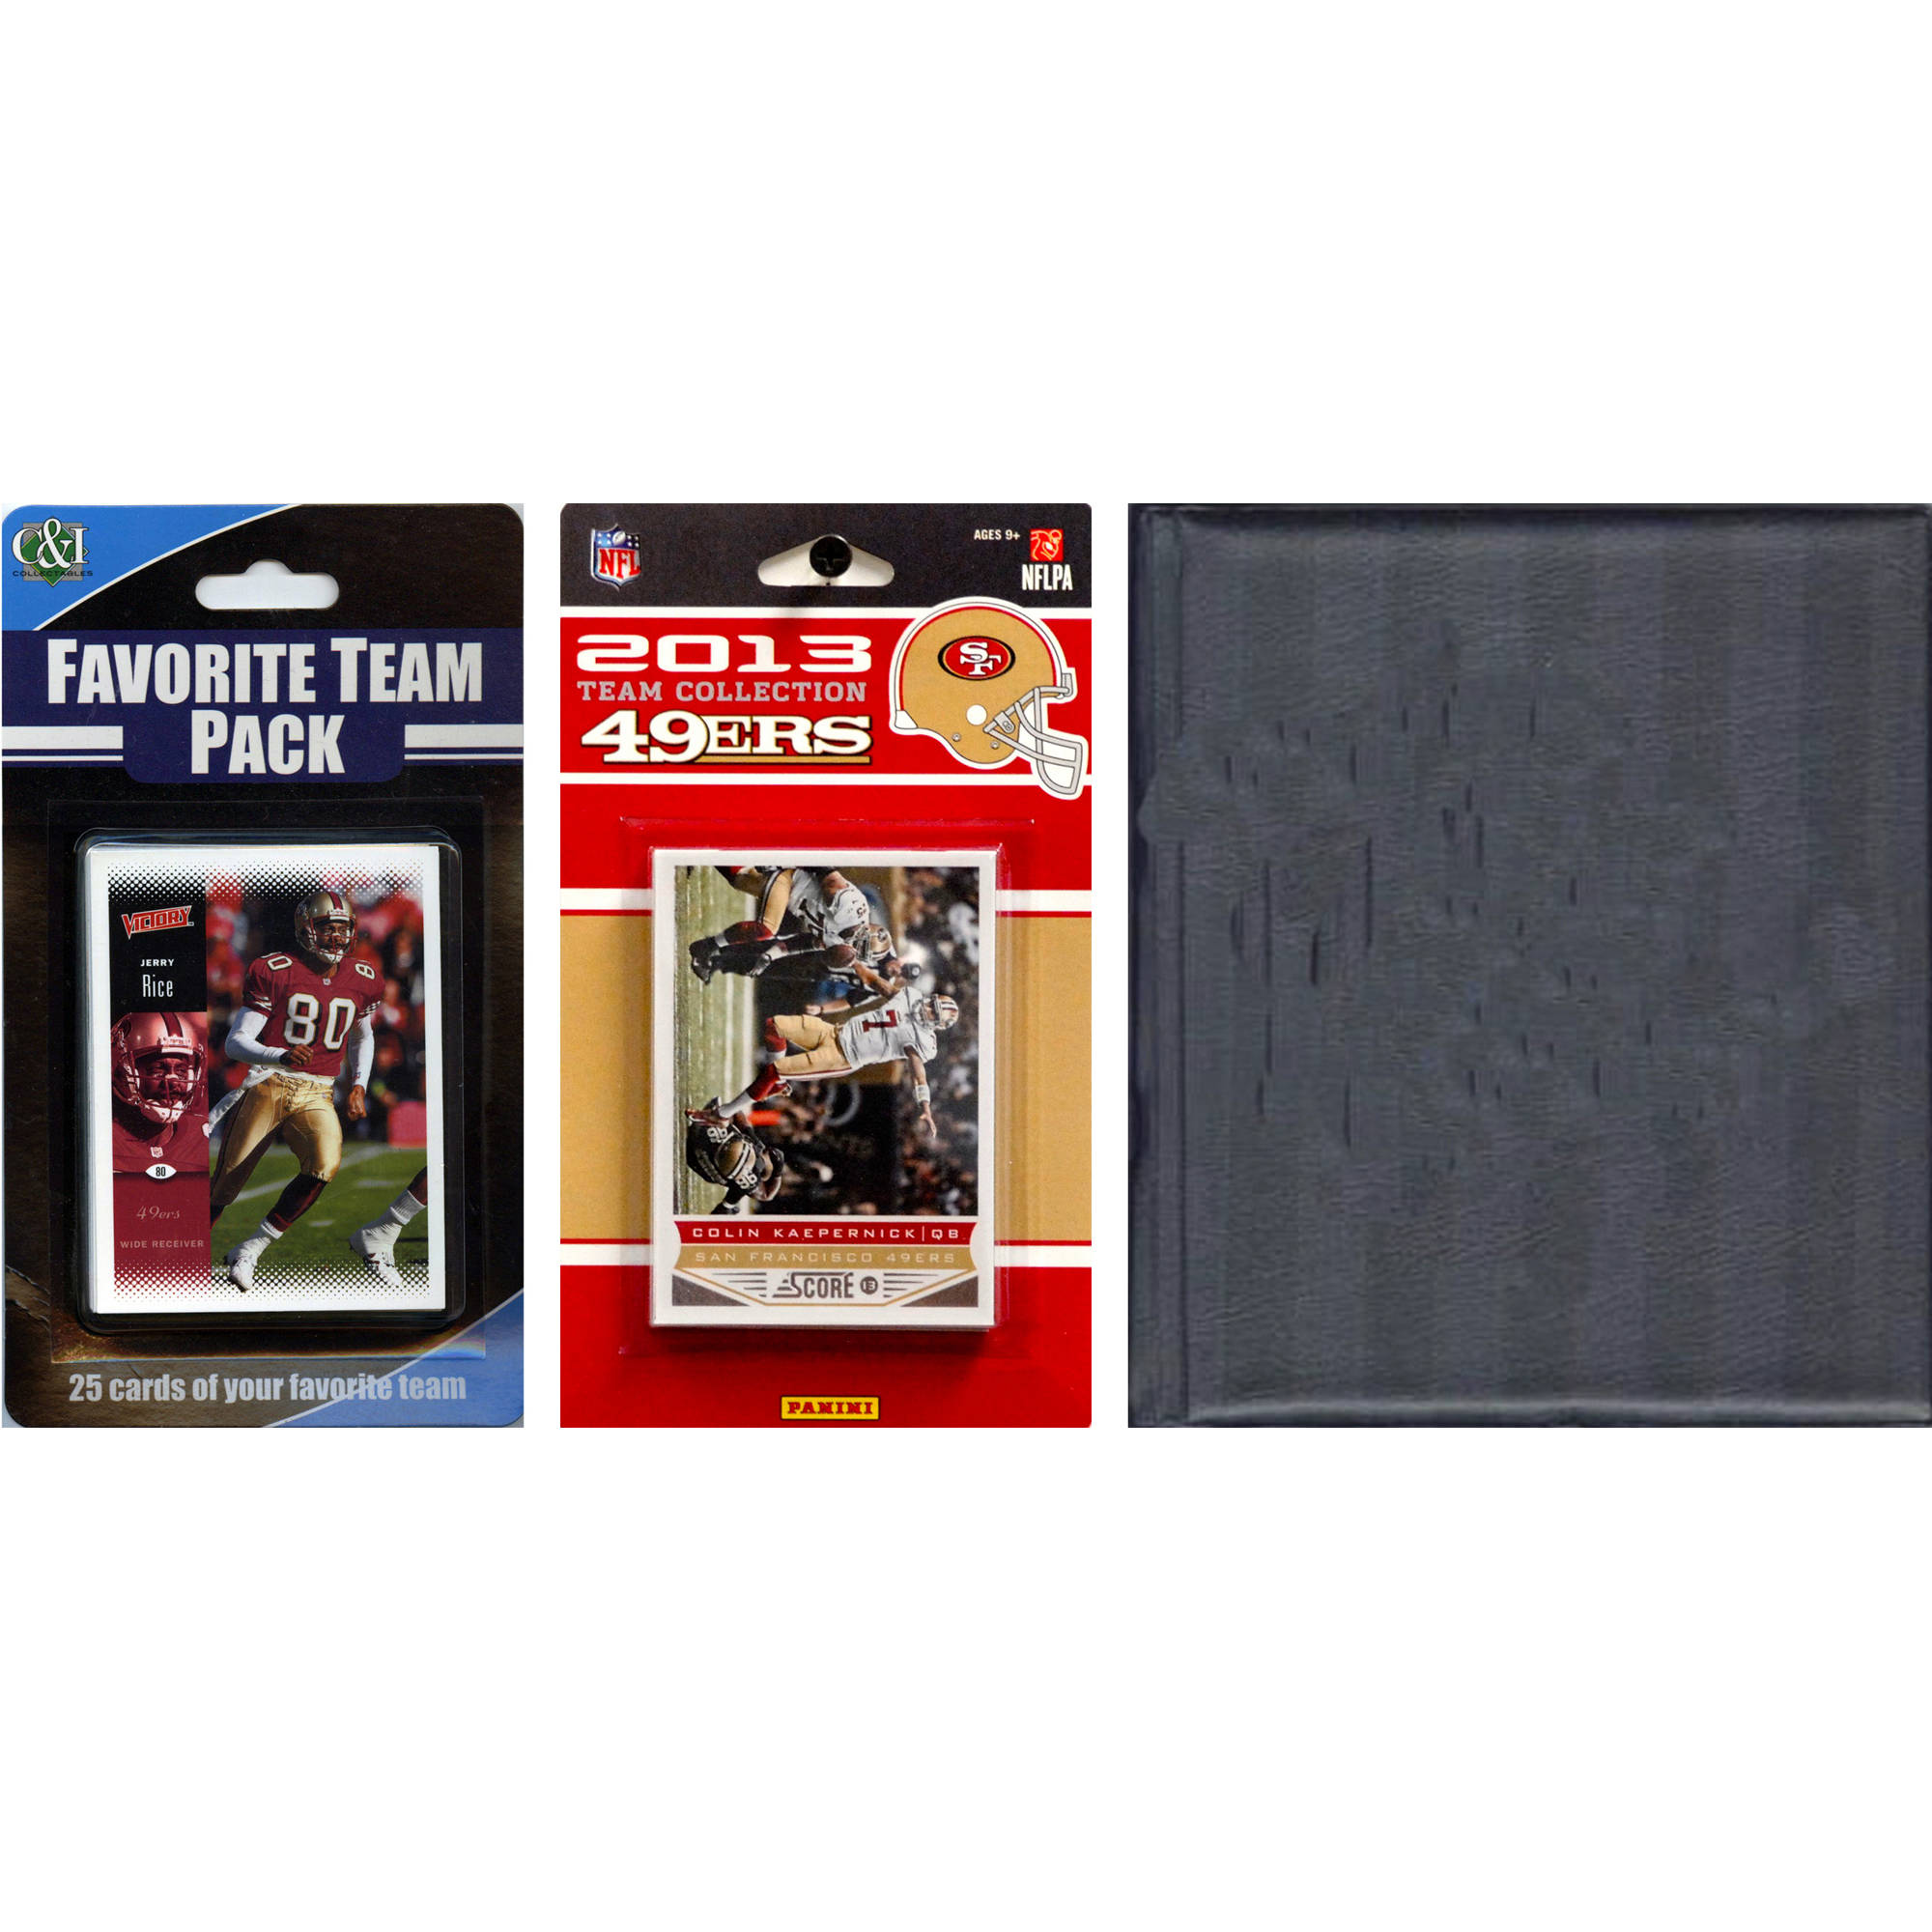 C&I Collectables NFL San Francisco 49ers Licensed 2013 Score Team Set and Favorite Player Trading Card Pack Plus Storage Album